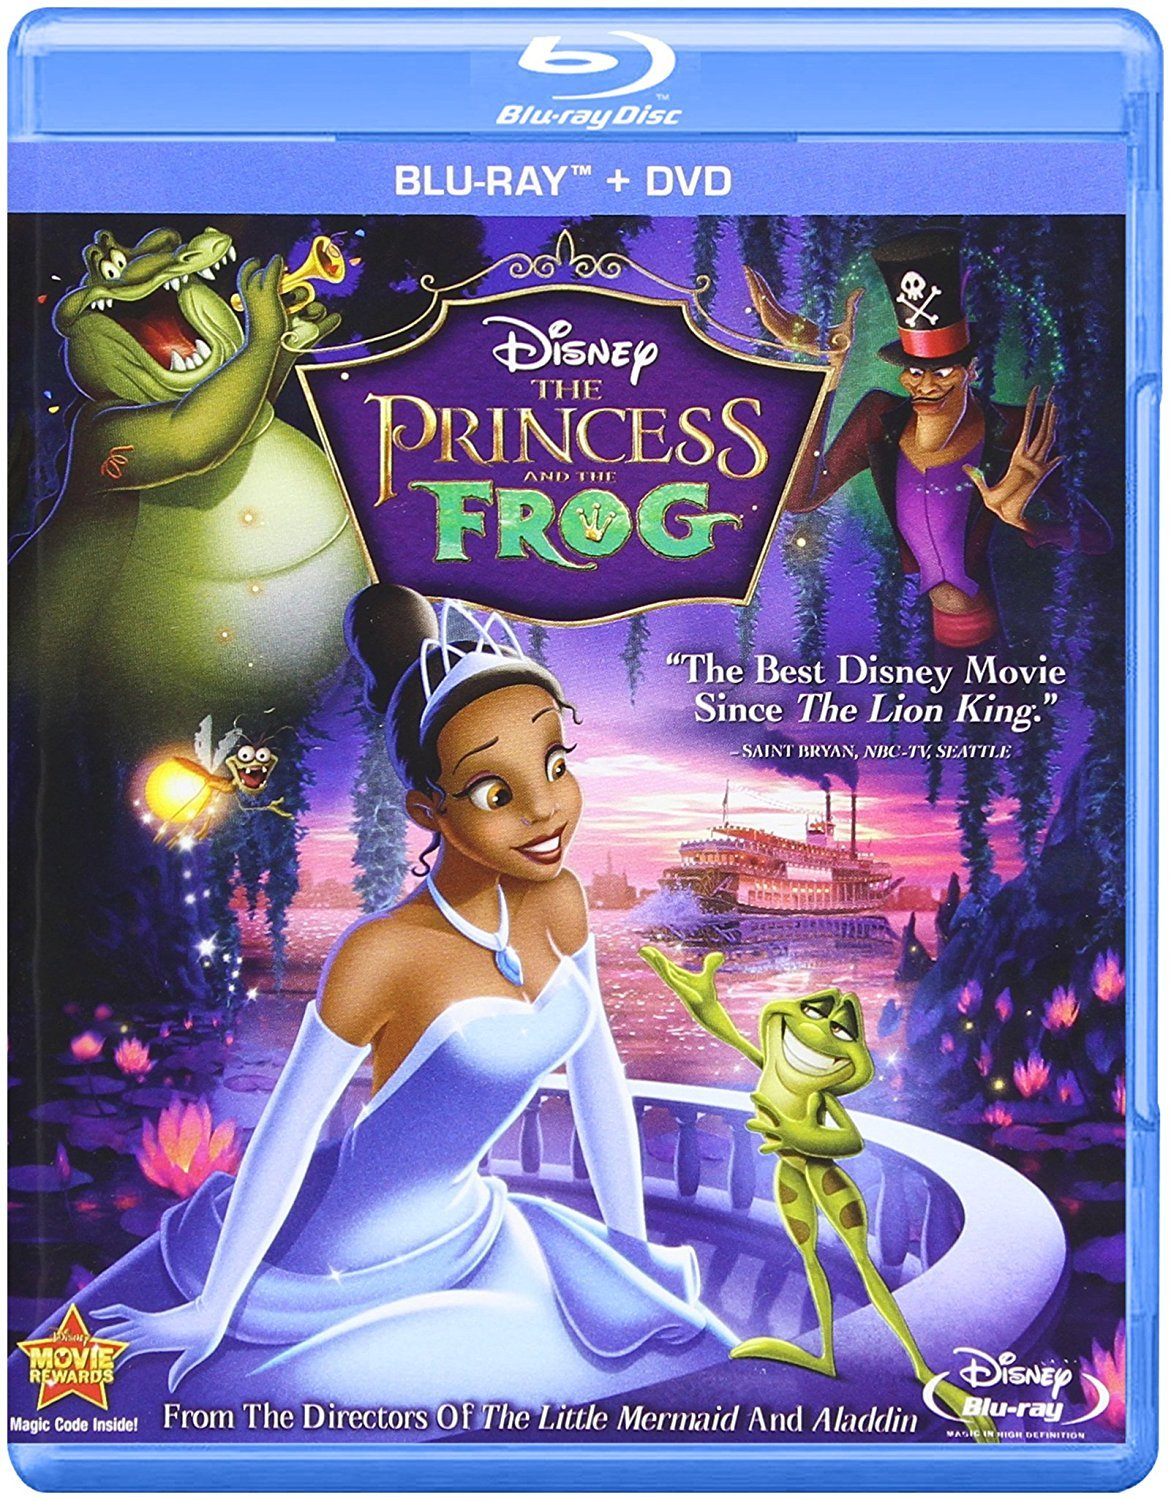 Disney Princess & The Frog (Two-Disc Blu-ray/DVD Combo)